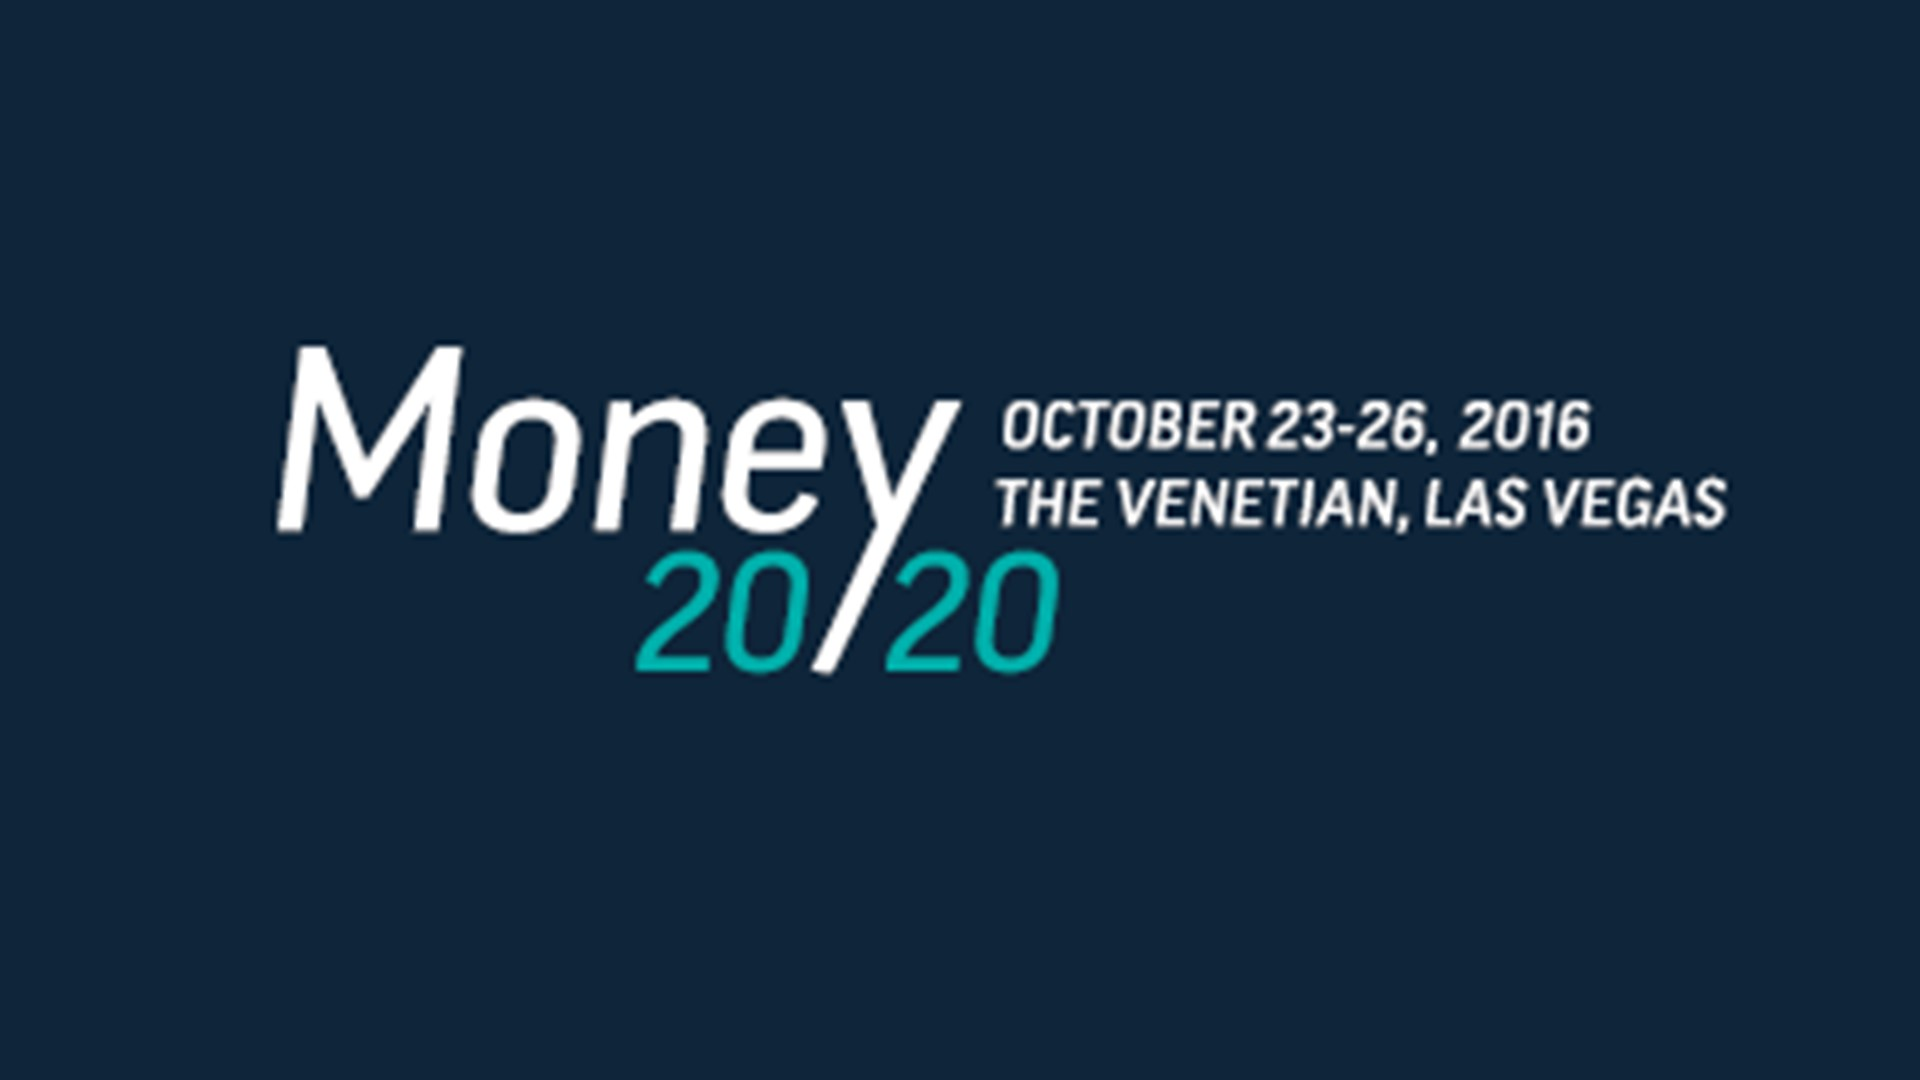 money2020-image